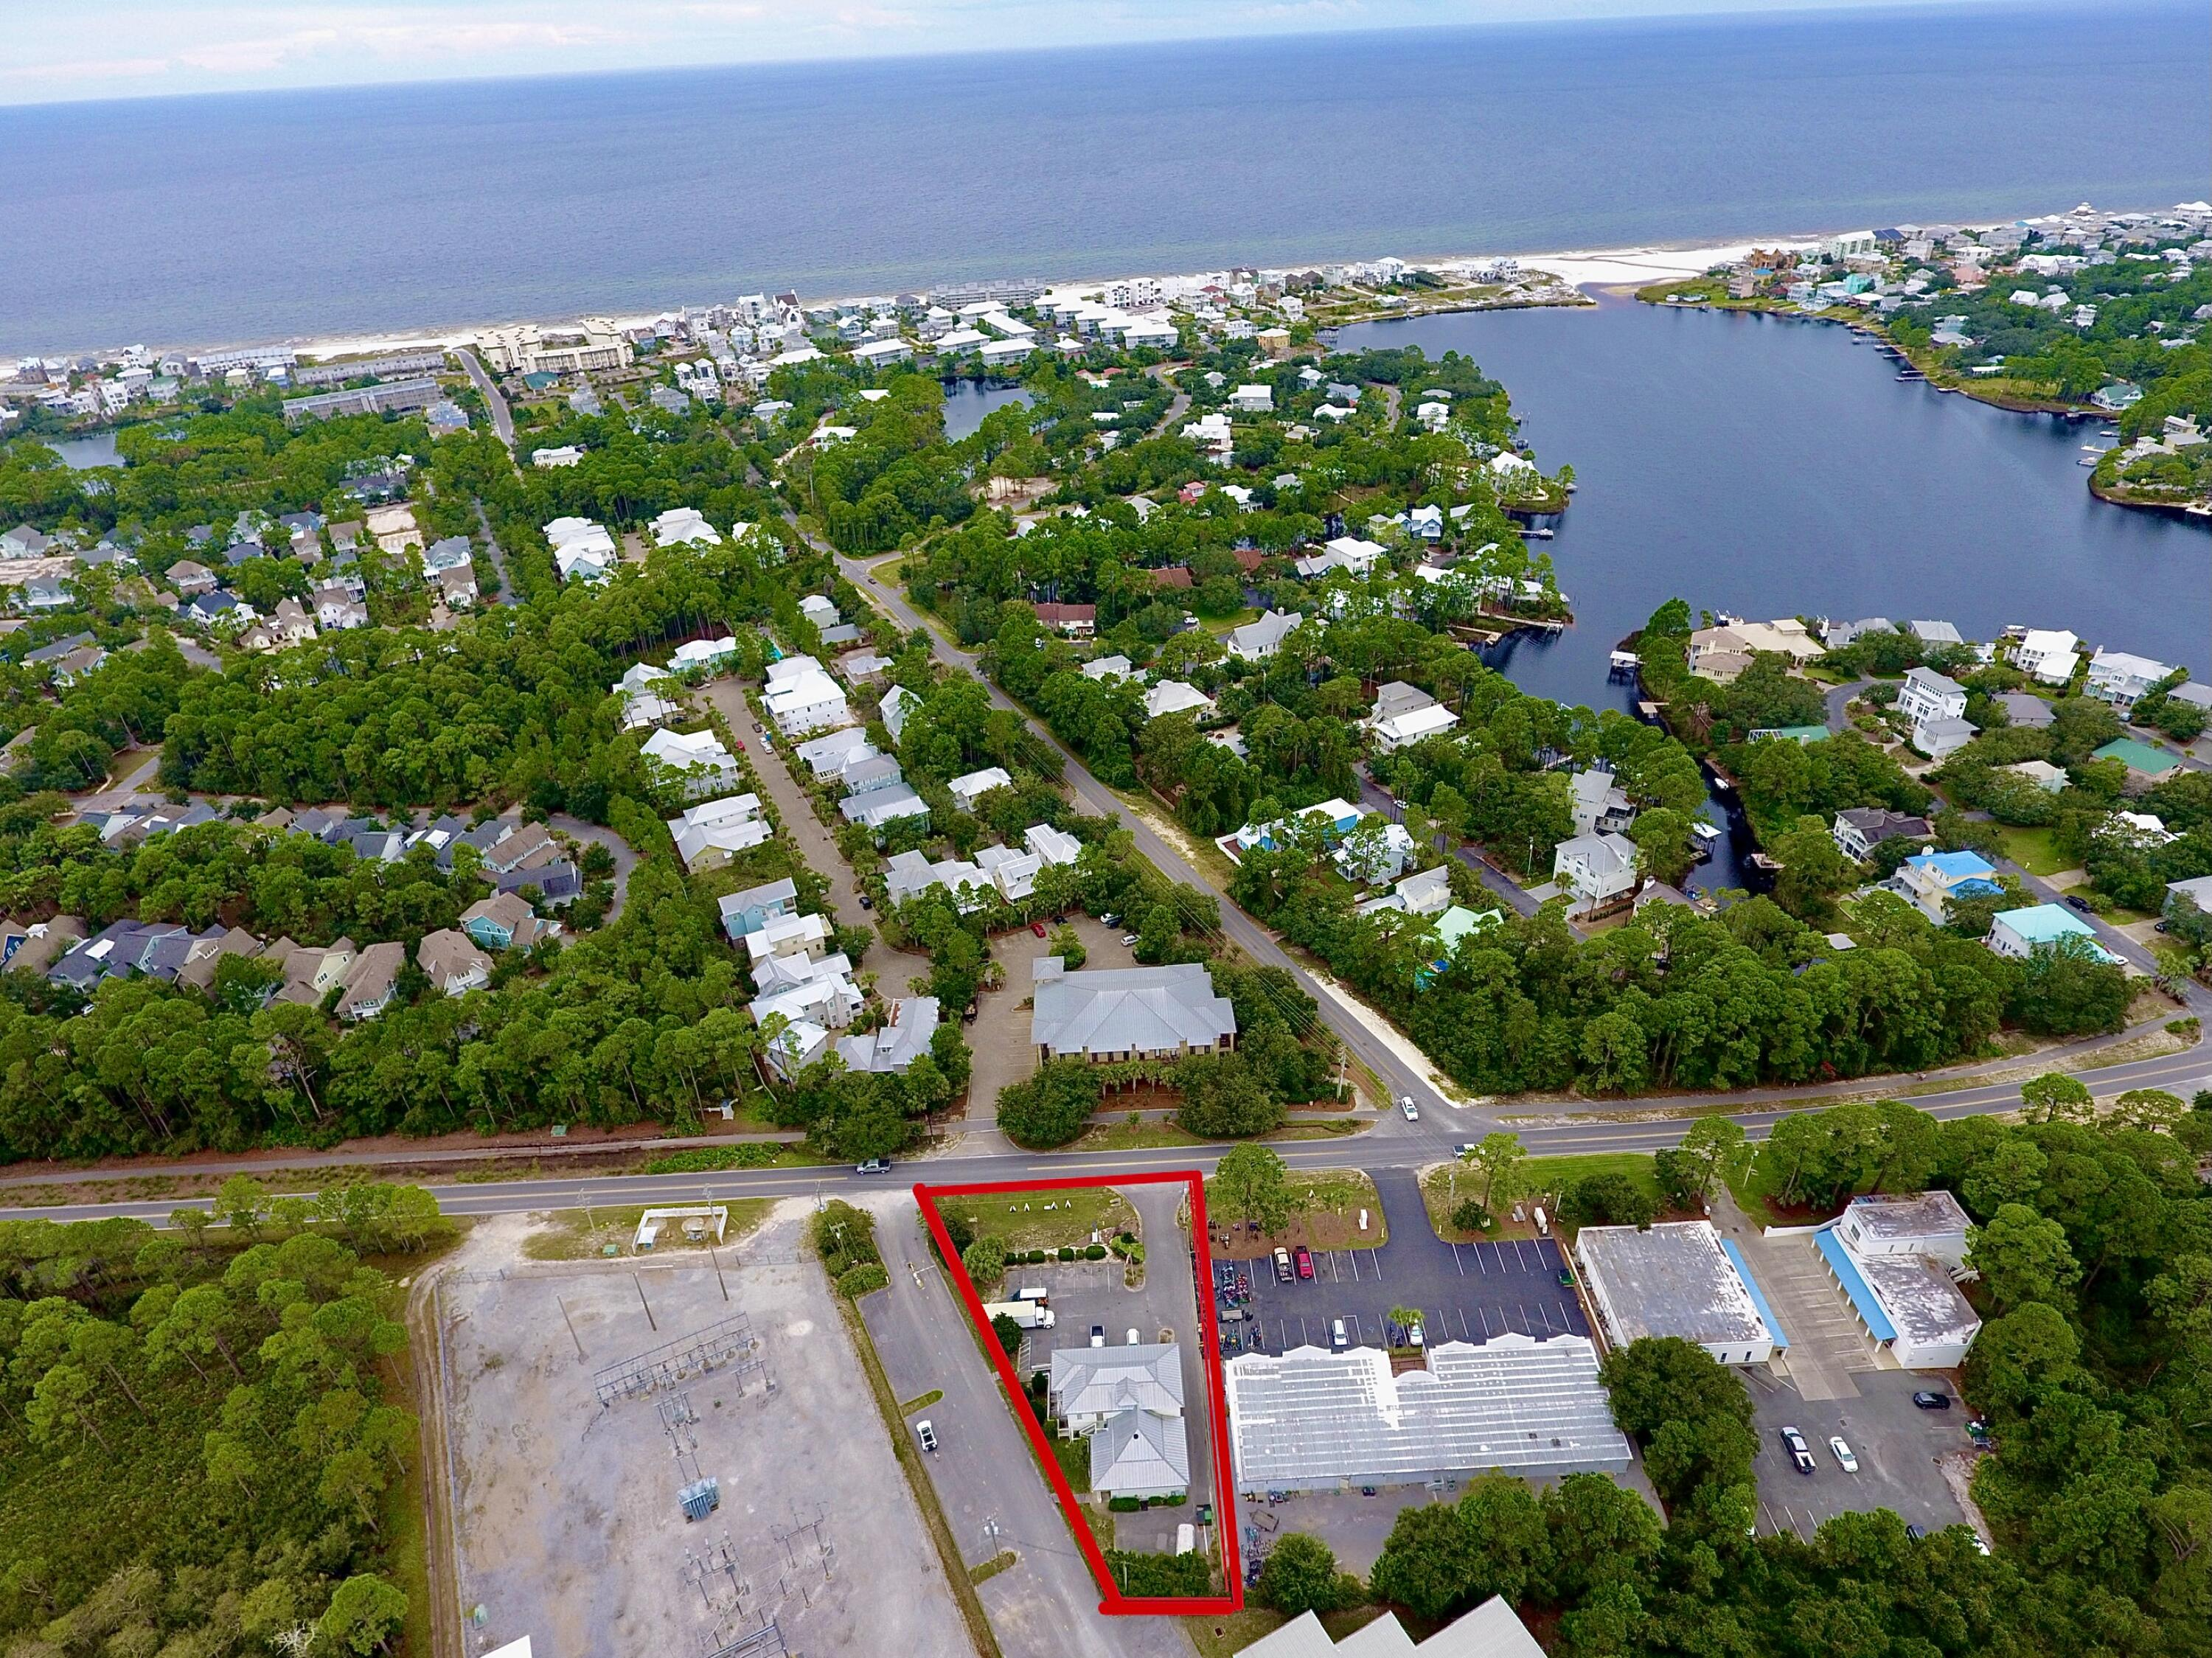 On 30A and Zoned VMU! 16 parking spaces, 3550 sqft heated and cooled. Located just east of eastern lake. This area of 30a is booming with new construction by St. Joe development, as well as private homes all around. The proposed south walton connector from the eastern lake area to 98 could be a game changer for the local businesses here. See attached link to the county website showing the proposed connector details. This two story building is currently being used as a furnishing designer showroom as well as office space. The building has a commercial elevator that is up to date on inspections, three bathrooms, as well as a kitchenette area.County web link: www.co.walton.fl.us/DocumentCenter/View/37185/Public-Meeting-Handout_08212019